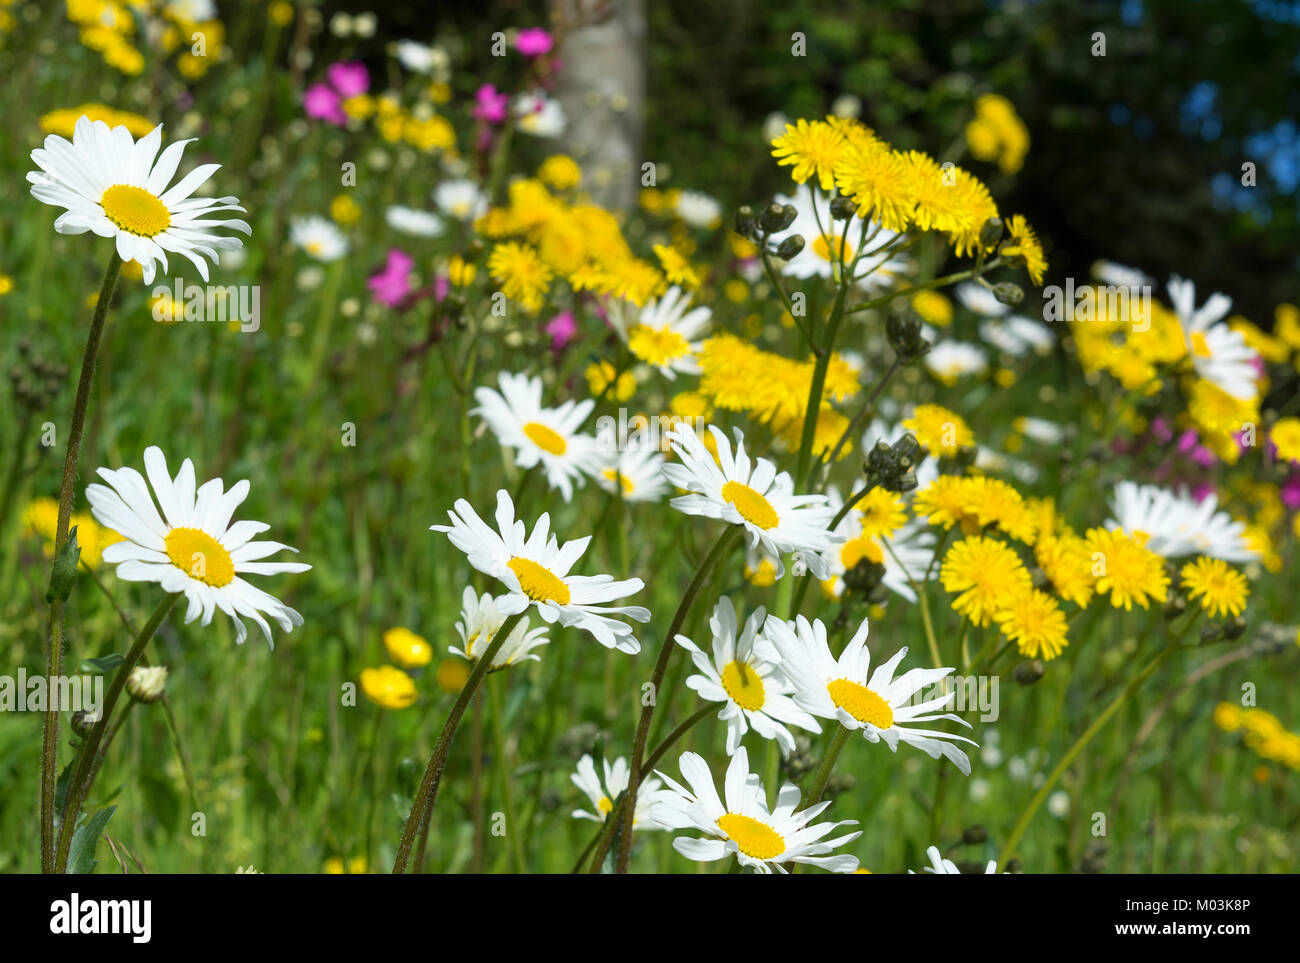 summer wild flowers growing by the roadside, england, uk. - Stock Image